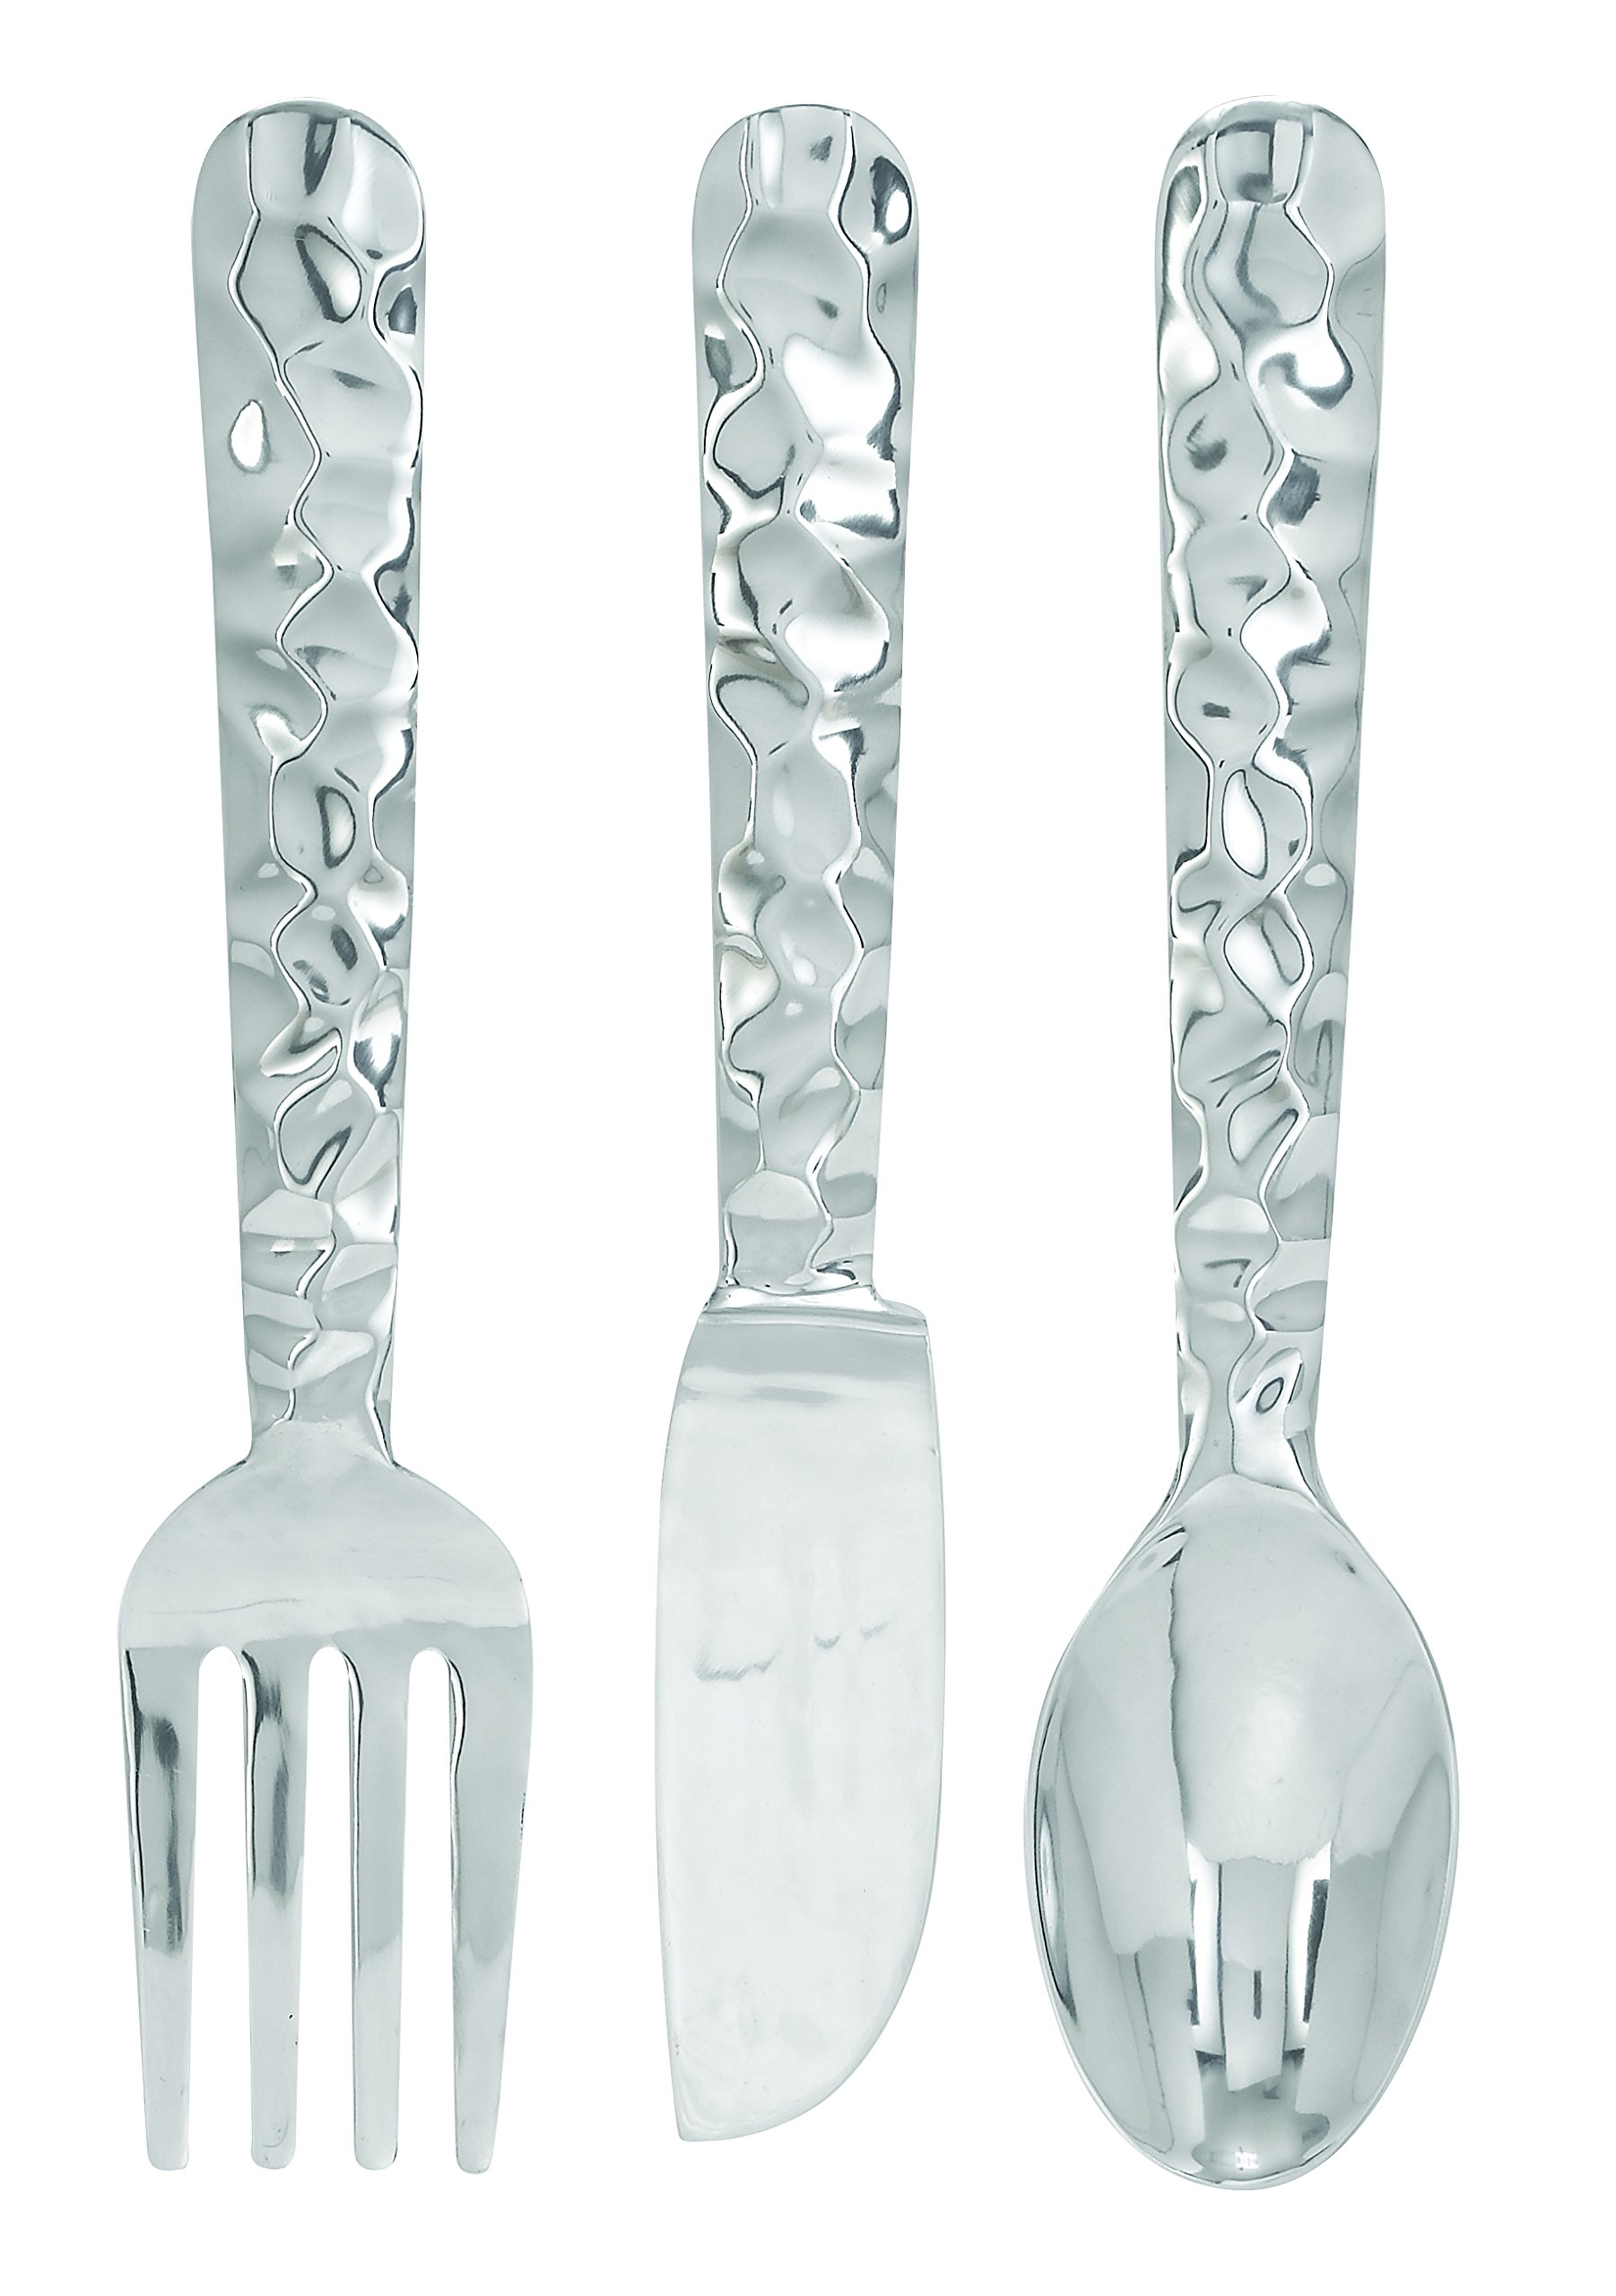 Deco 79 Cutlery Wall Decor Aluminum Utensil, 36/8-Inch, Set of 3